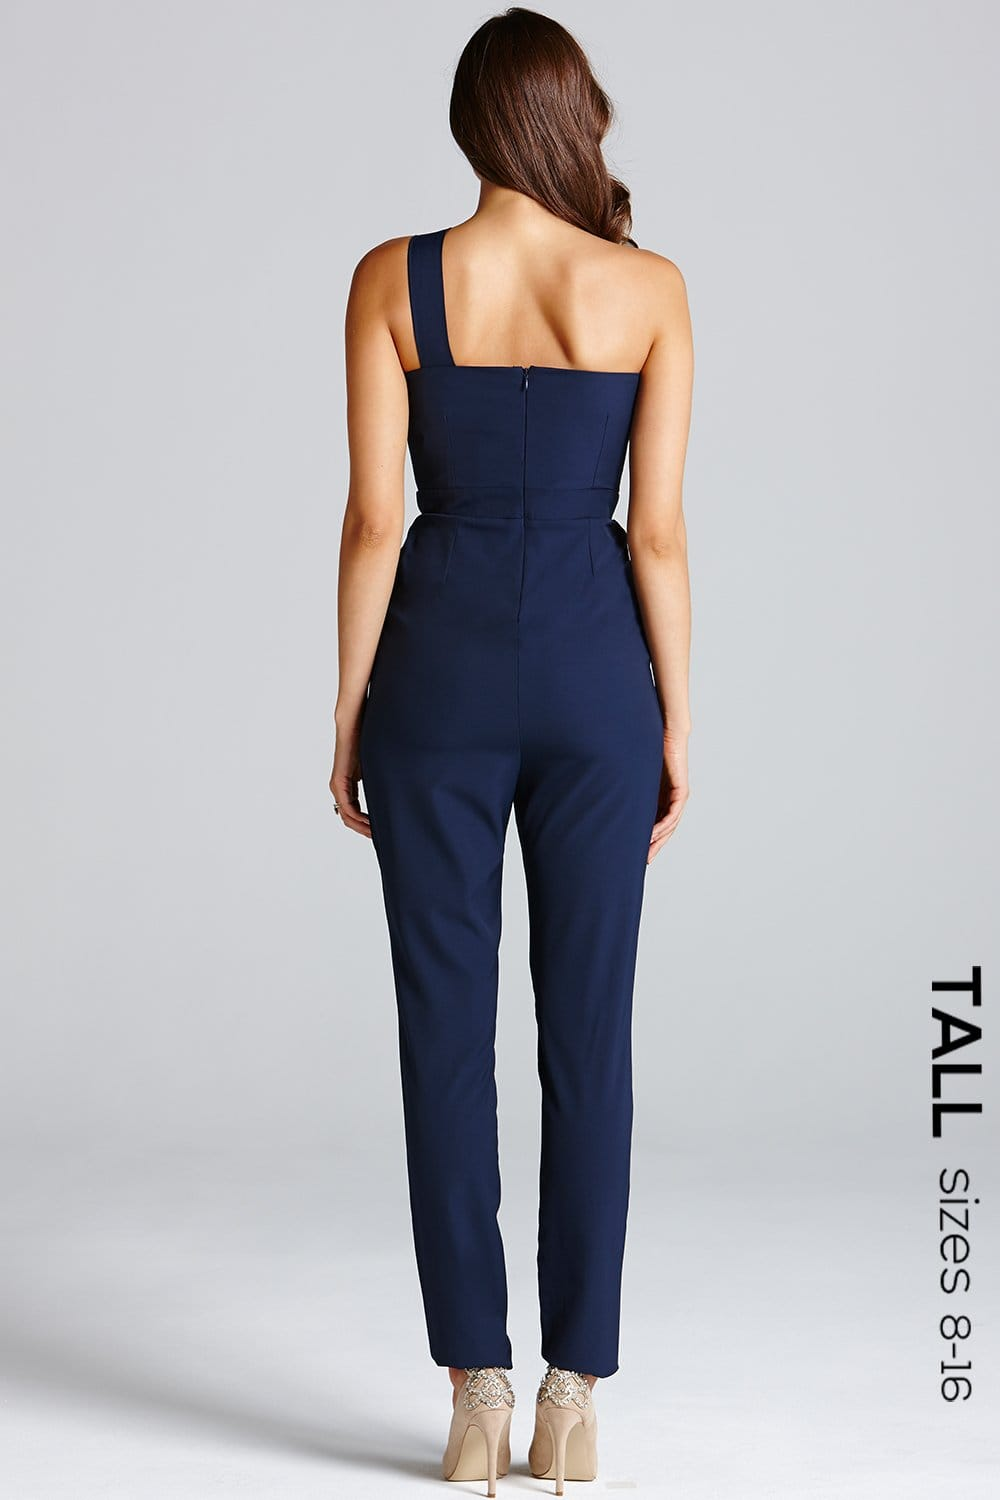 533c78babe2 Navy One Shoulder Cut-Out Jumpsuit - from Little Mistress UK